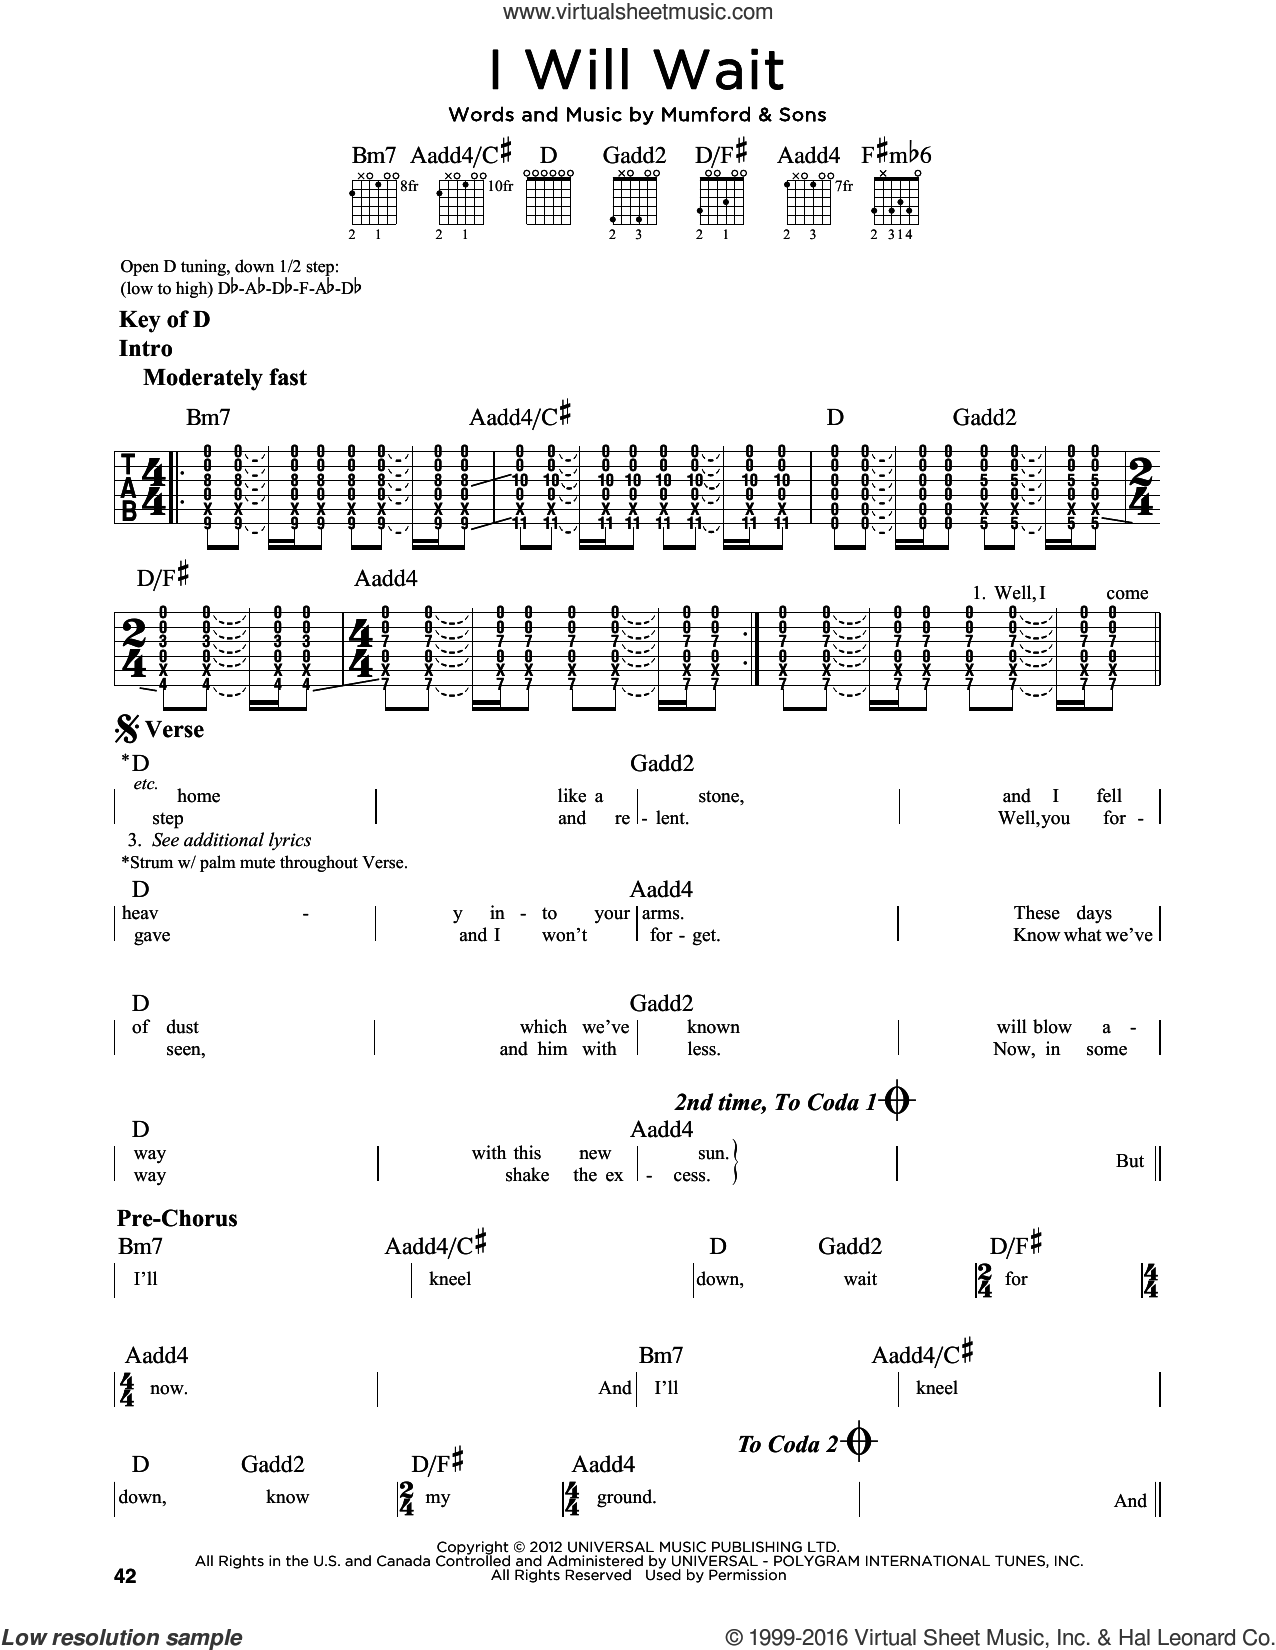 I Will Wait sheet music for guitar solo (lead sheet) by Mumford & Sons. Score Image Preview.